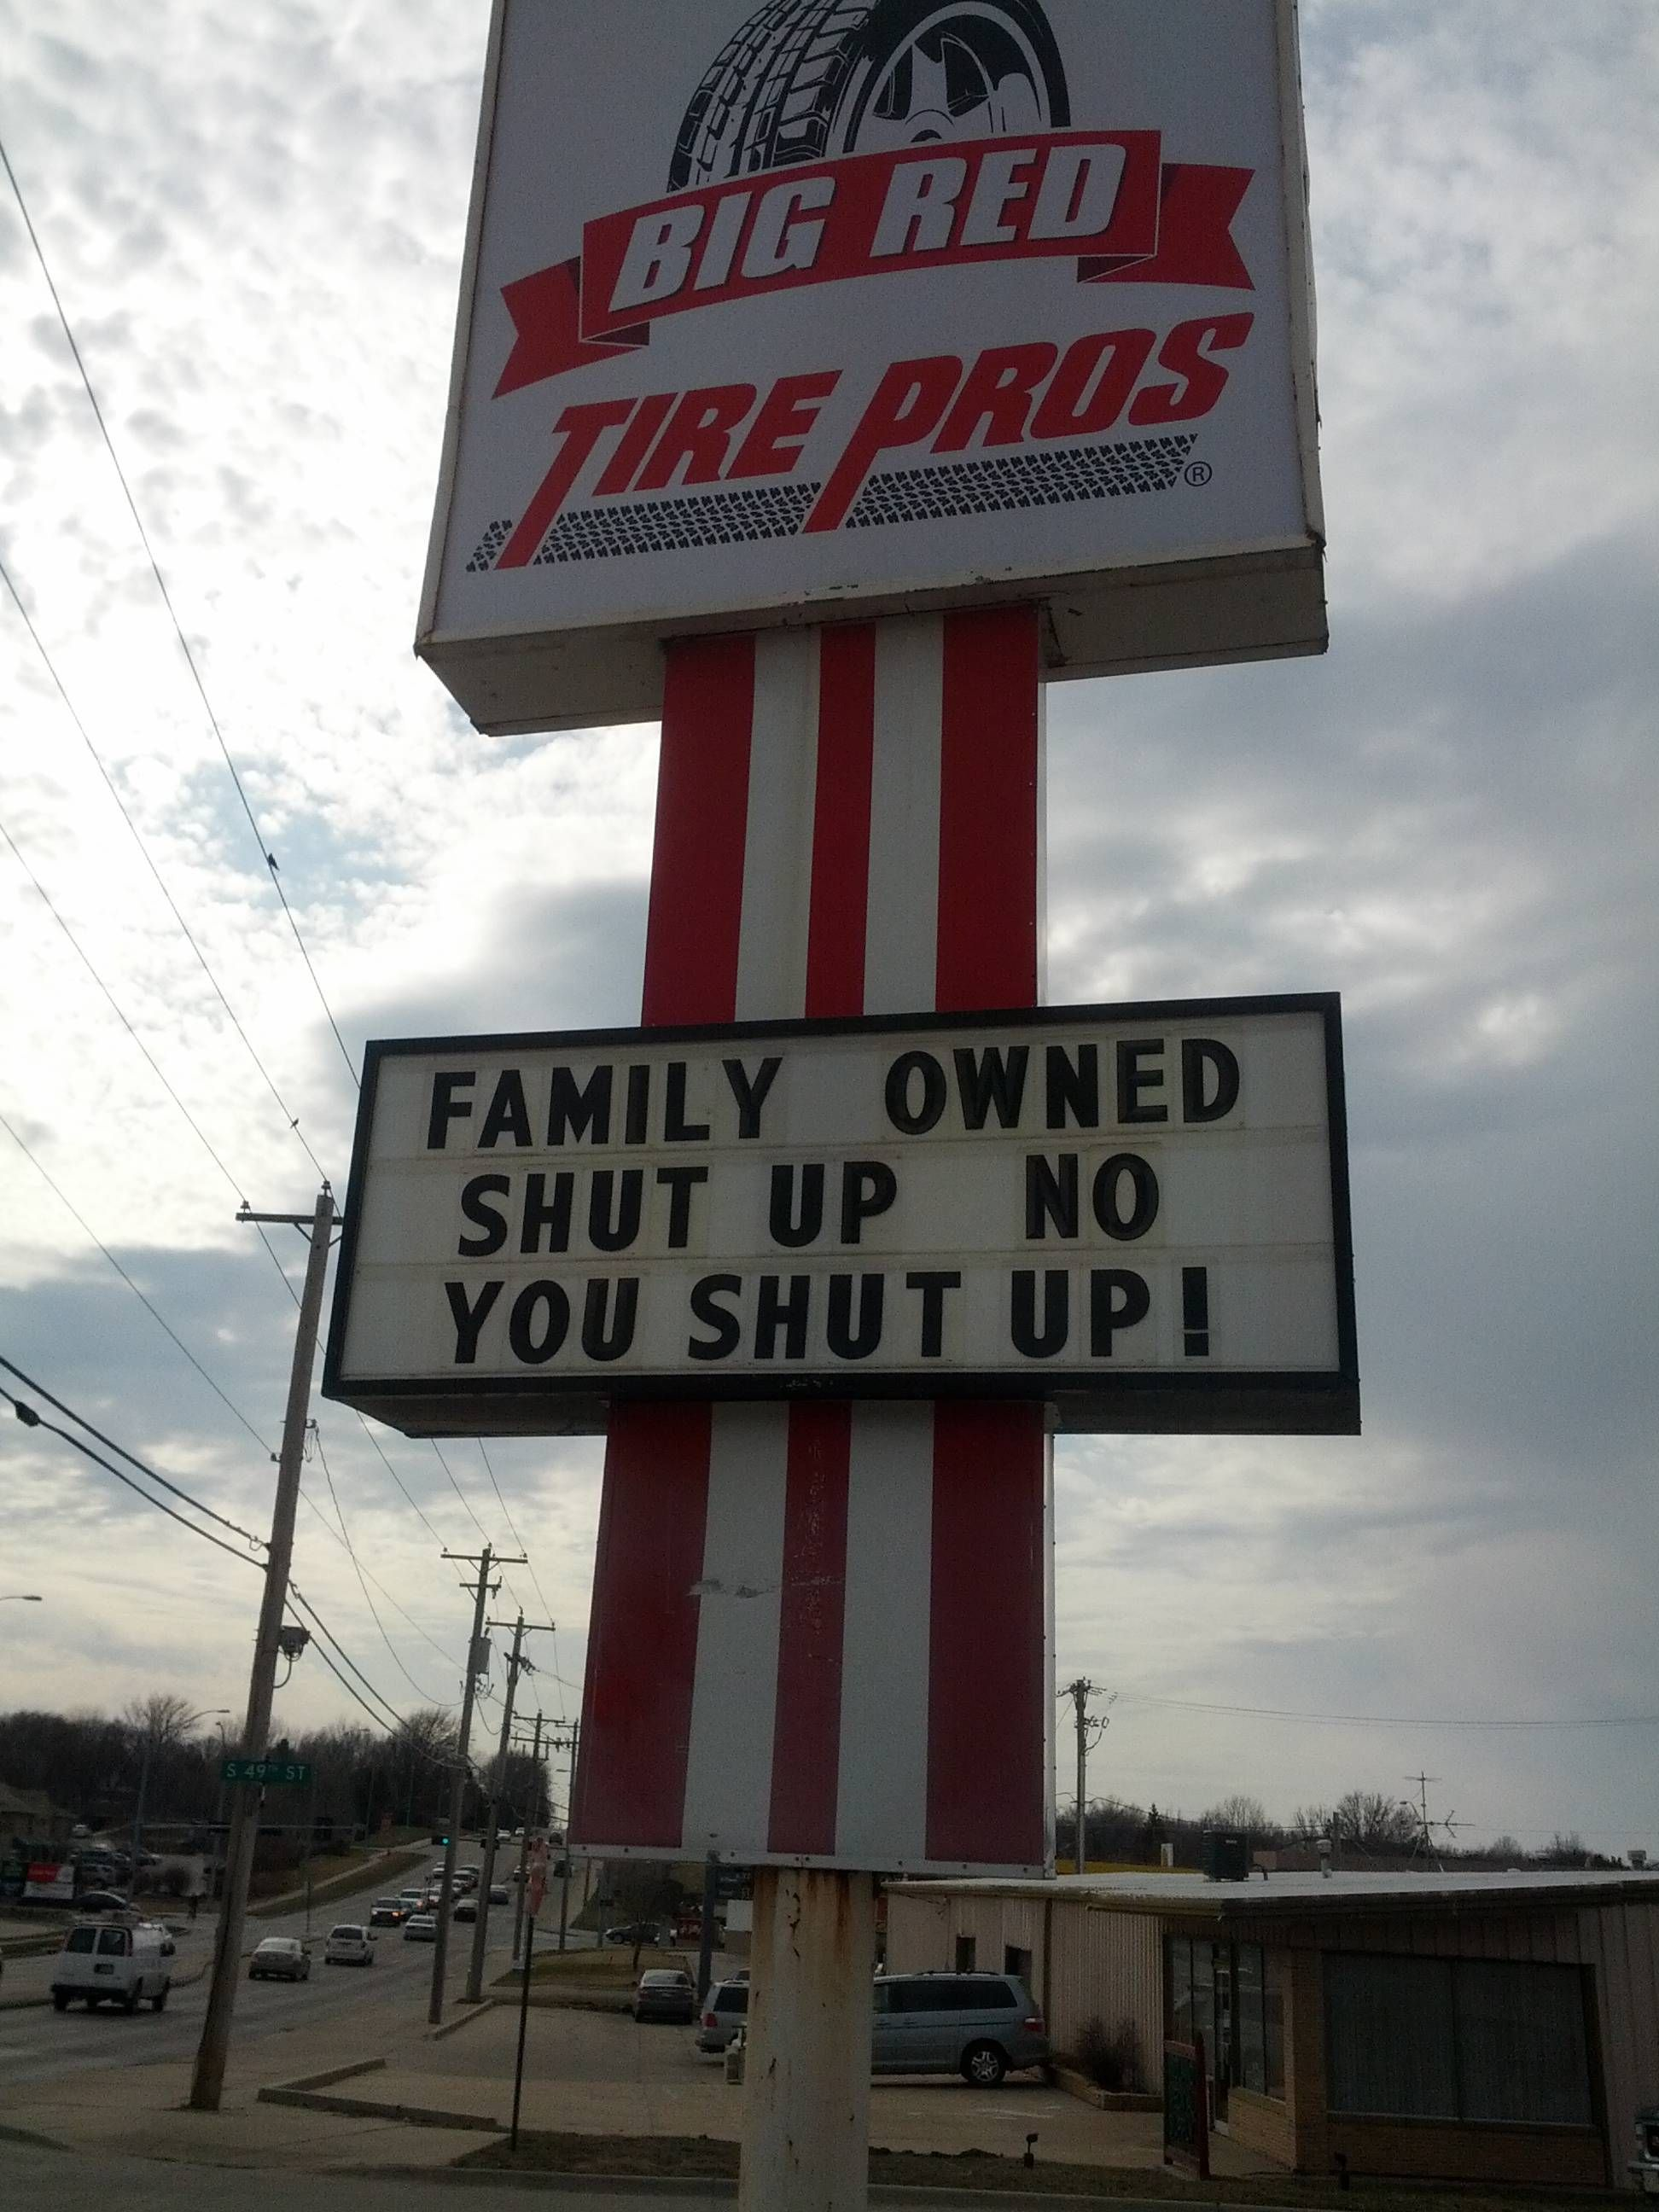 Just A Fun Road Side Sign Business Slogans Funny Pictures Funny Pictures Can T Stop Laughing